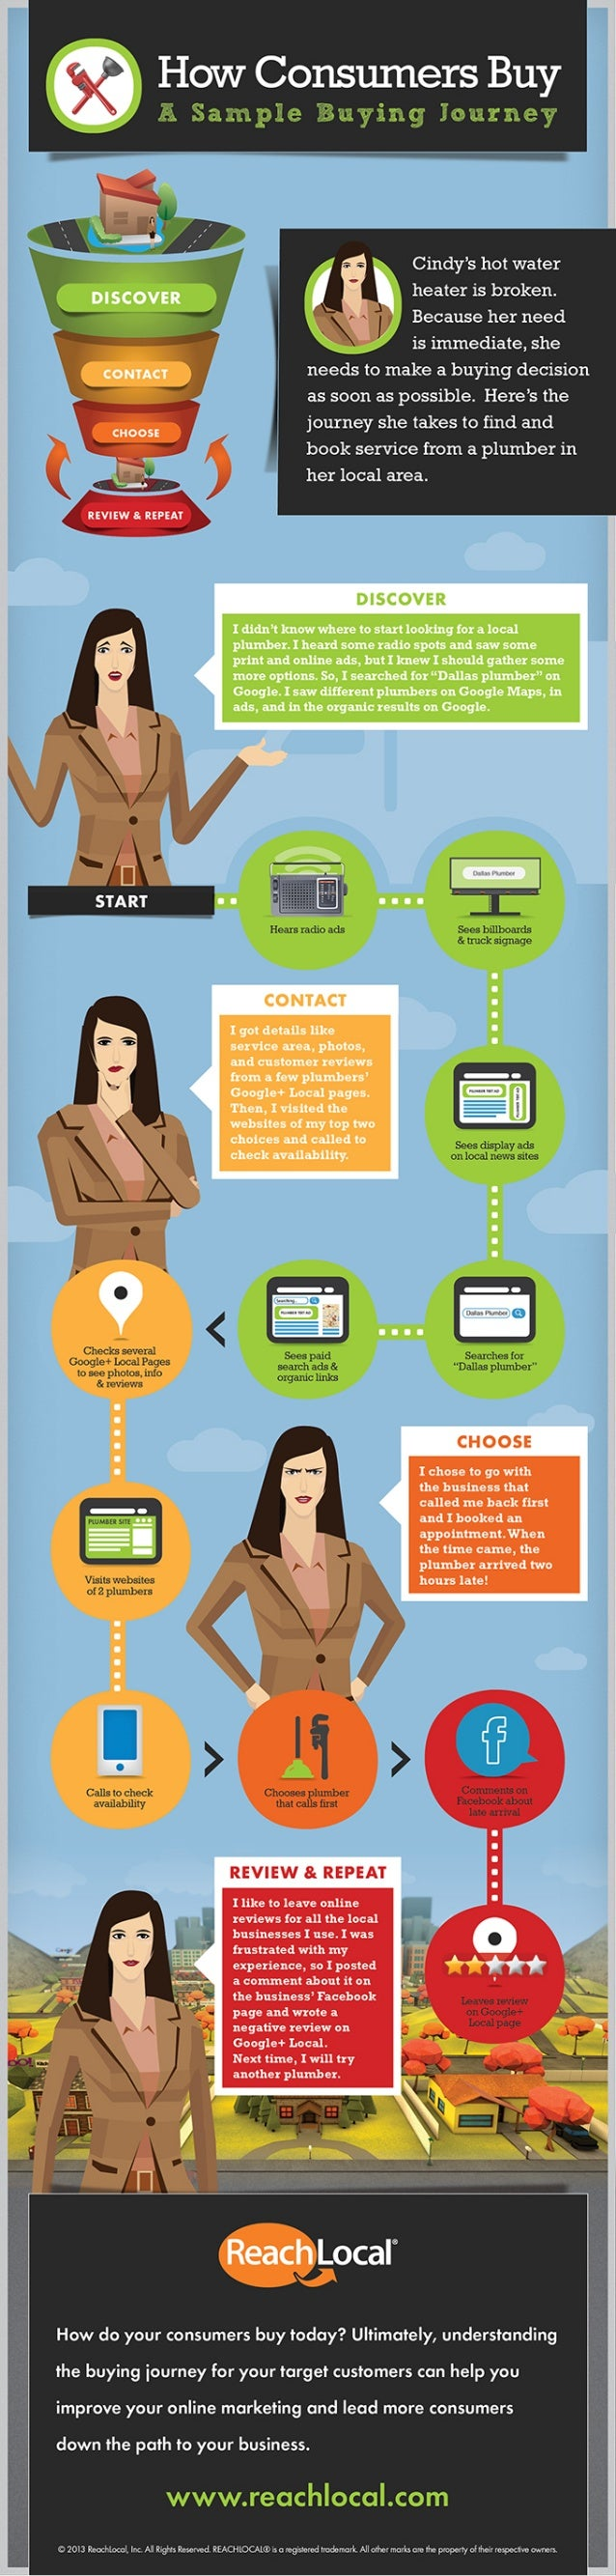 Consumer Buying Journey Infographic